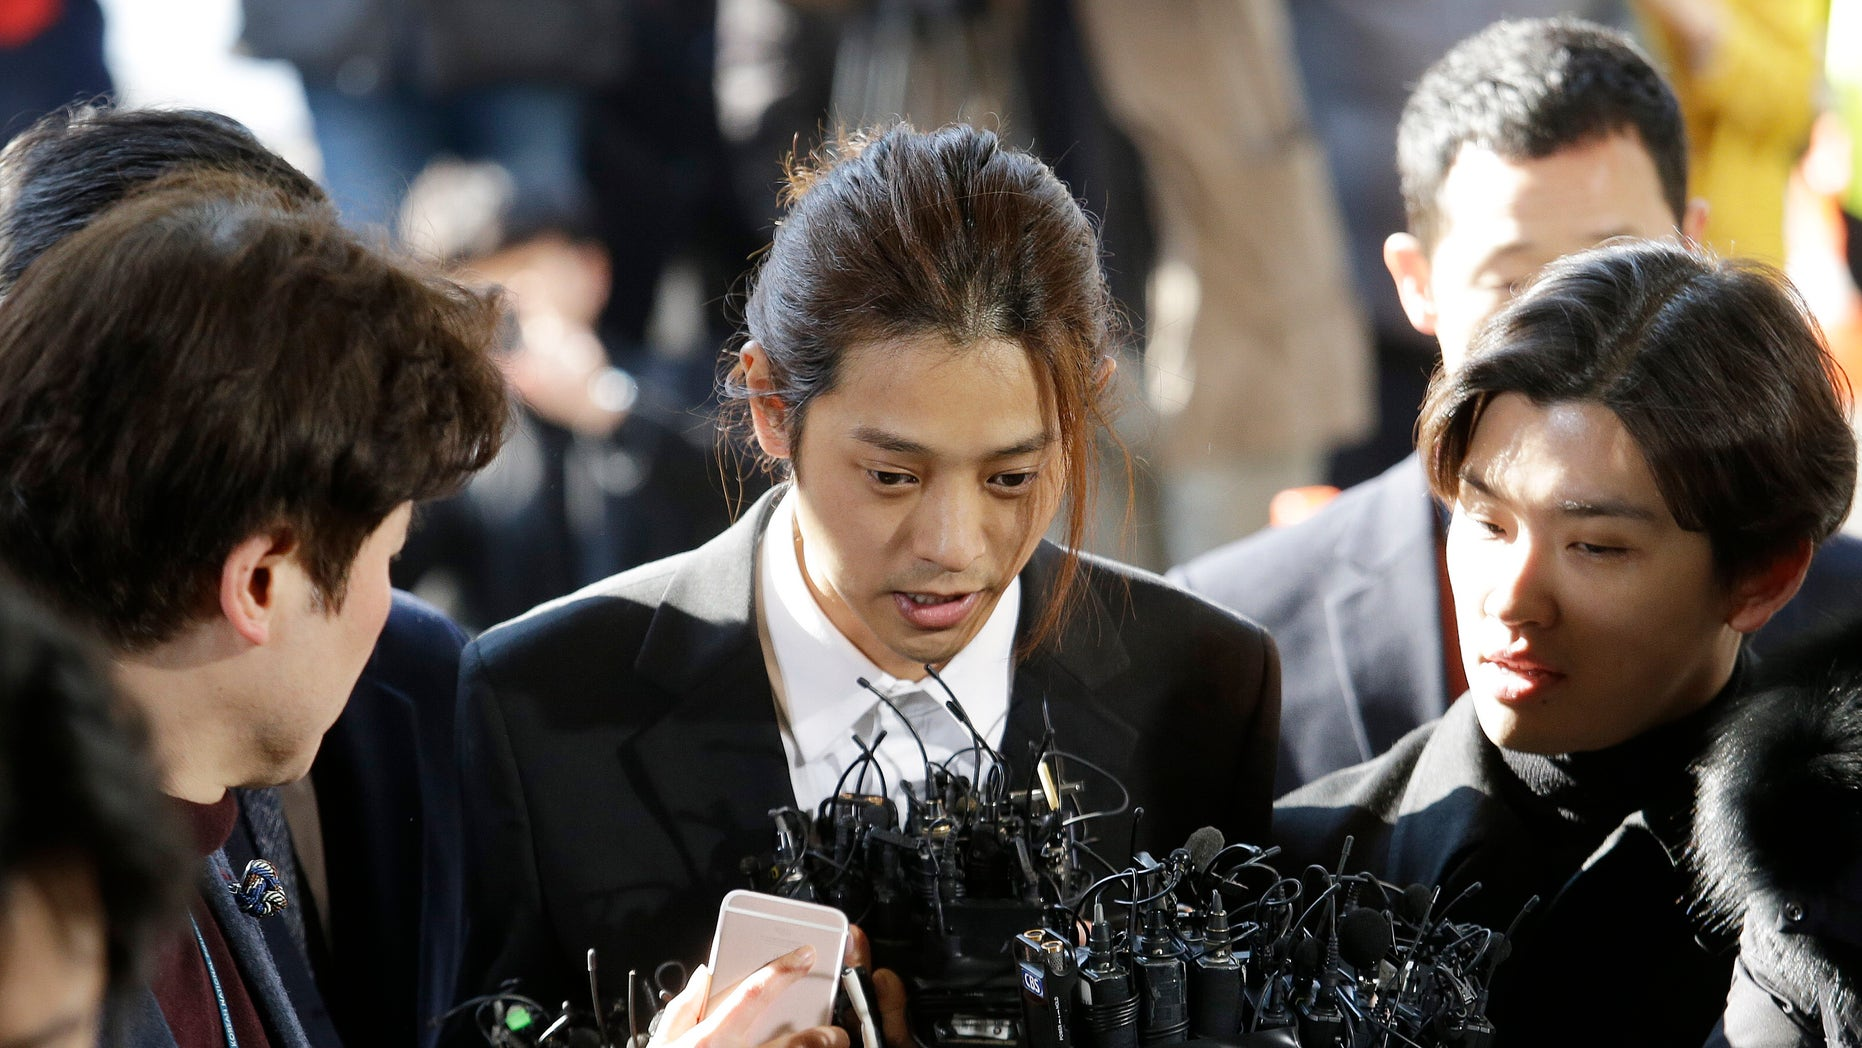 K-pop singer Jung Joon-young booked by police, quits showbiz